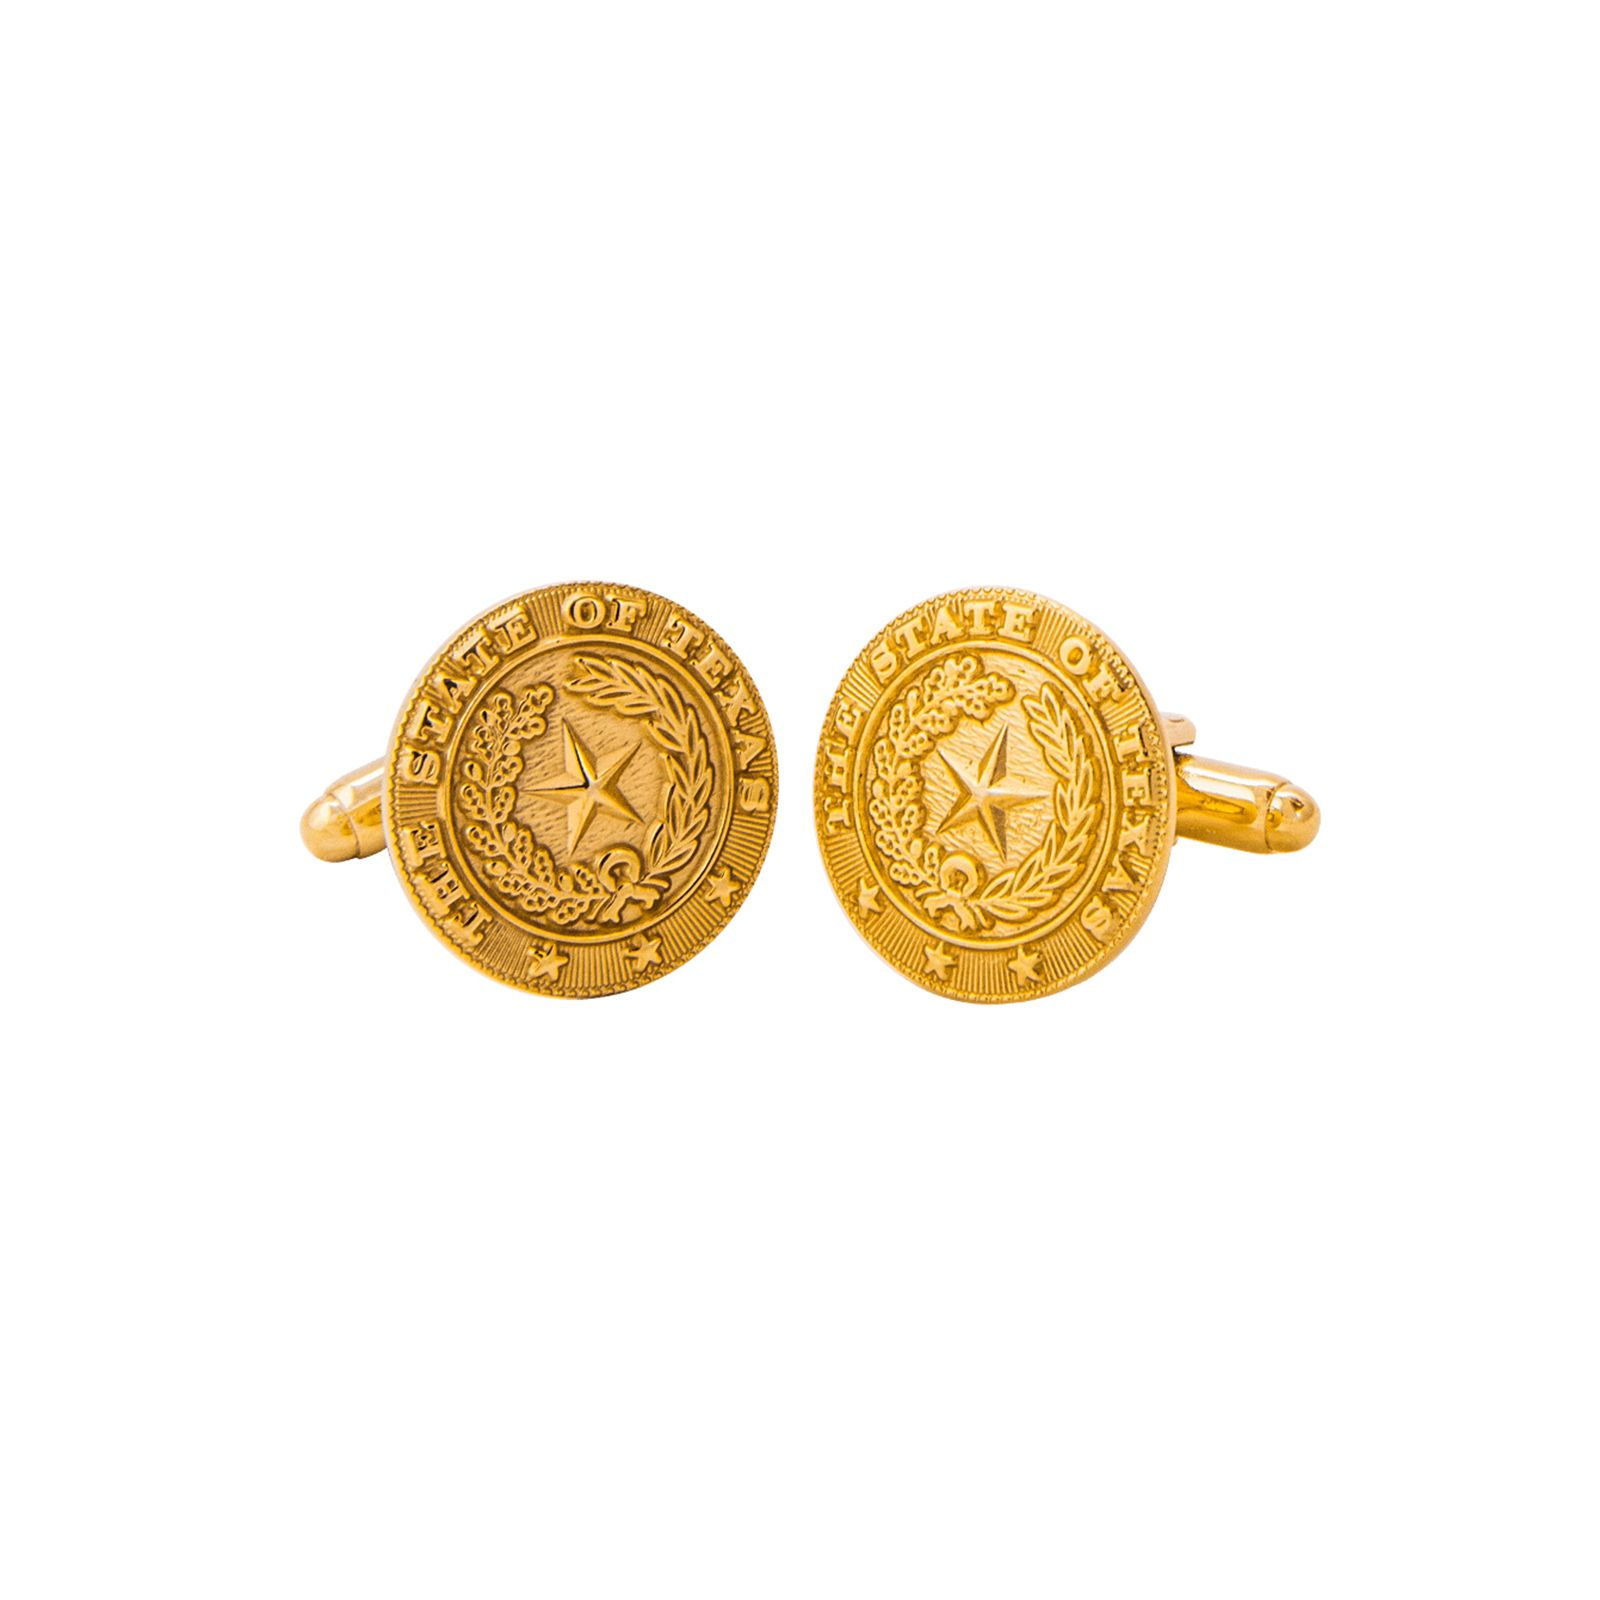 Texas State Seal Gold-Plated Cufflinks